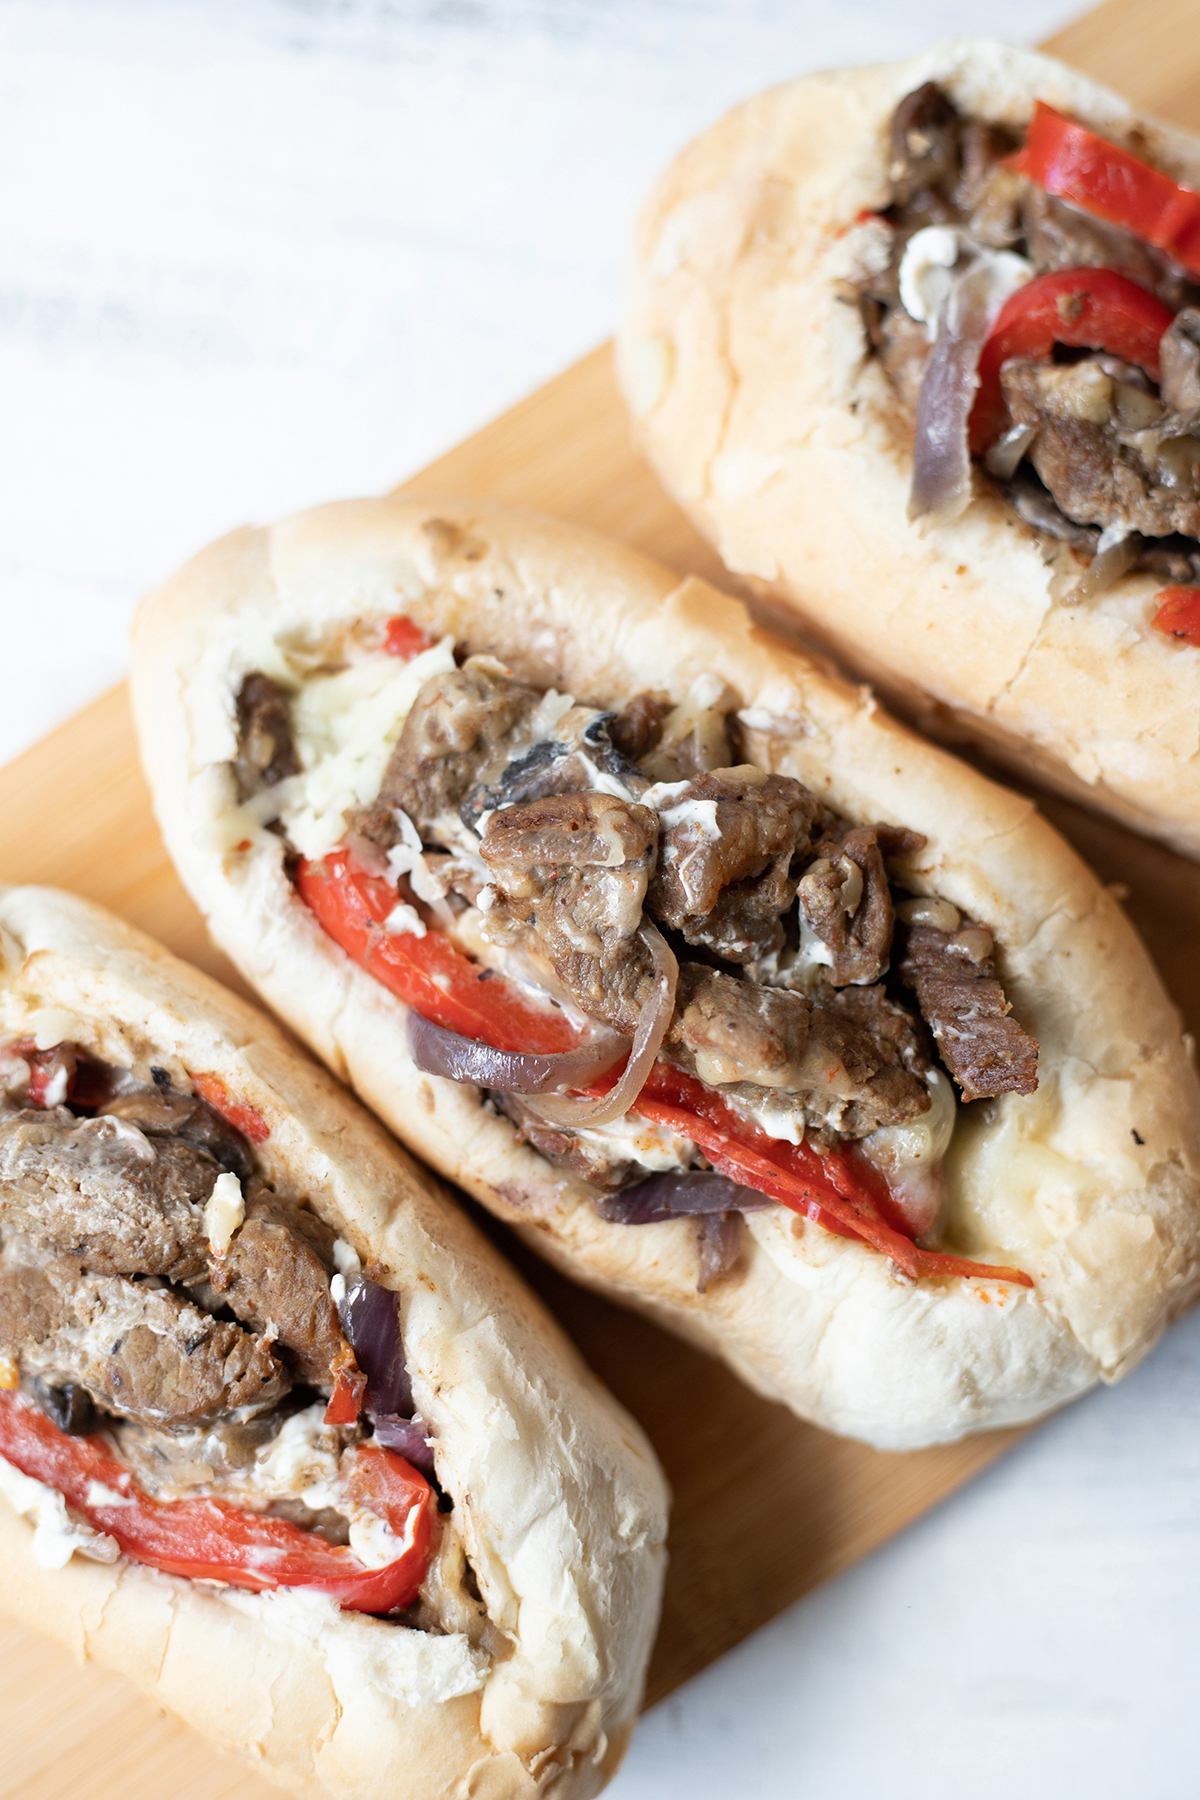 close shot to the Philly Cheesesteak Sandwich #Phillycheesesteaksandwich #EasySandwich #phillycheesesteakrecipe #lunchrecipes #bestphillycheesesteak